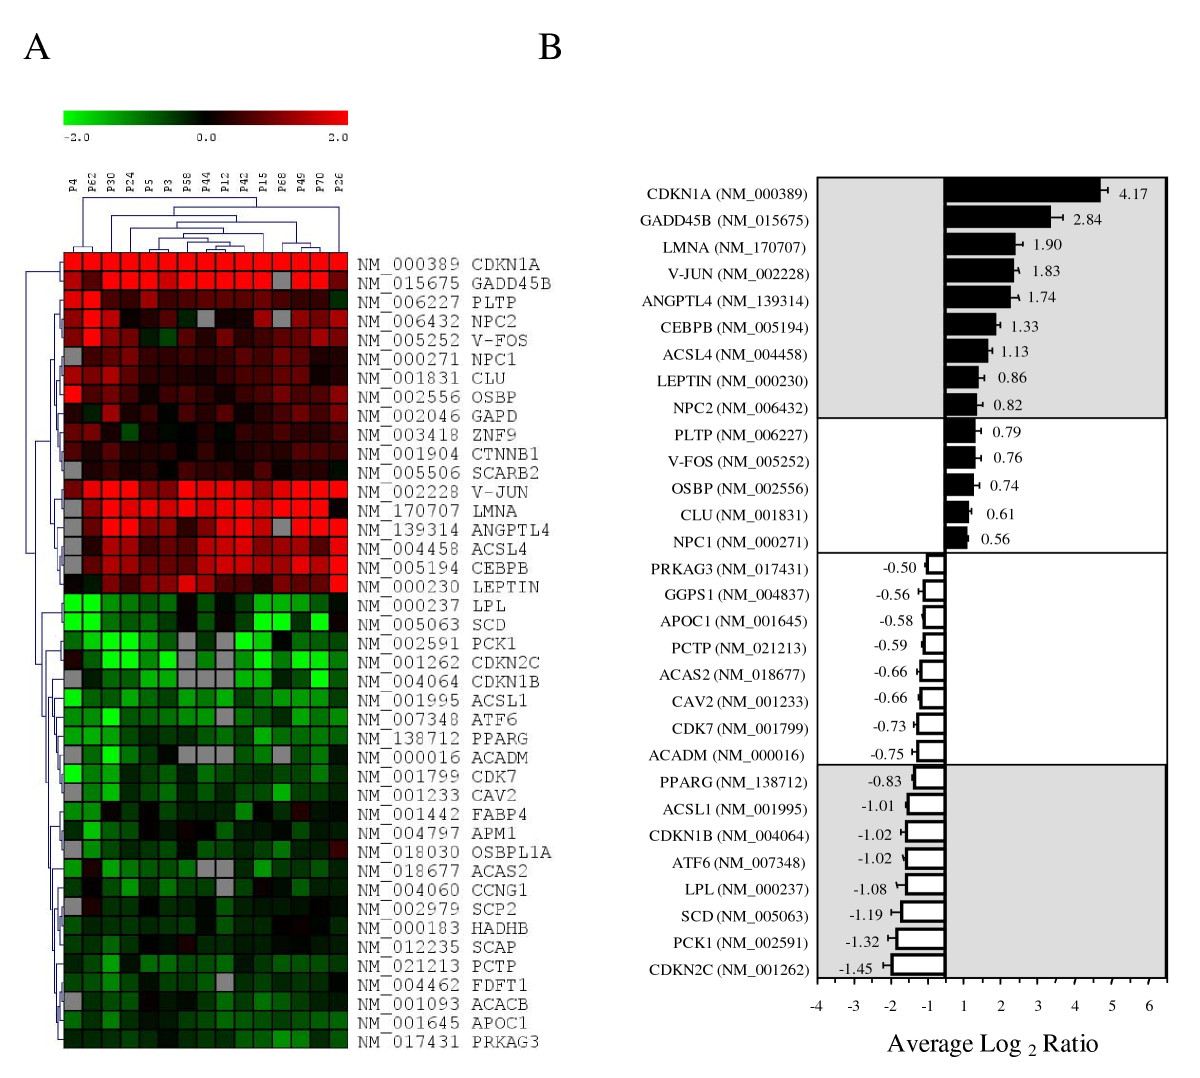 http://static-content.springer.com/image/art%3A10.1186%2F1755-8794-3-61/MediaObjects/12920_2010_Article_196_Fig1_HTML.jpg